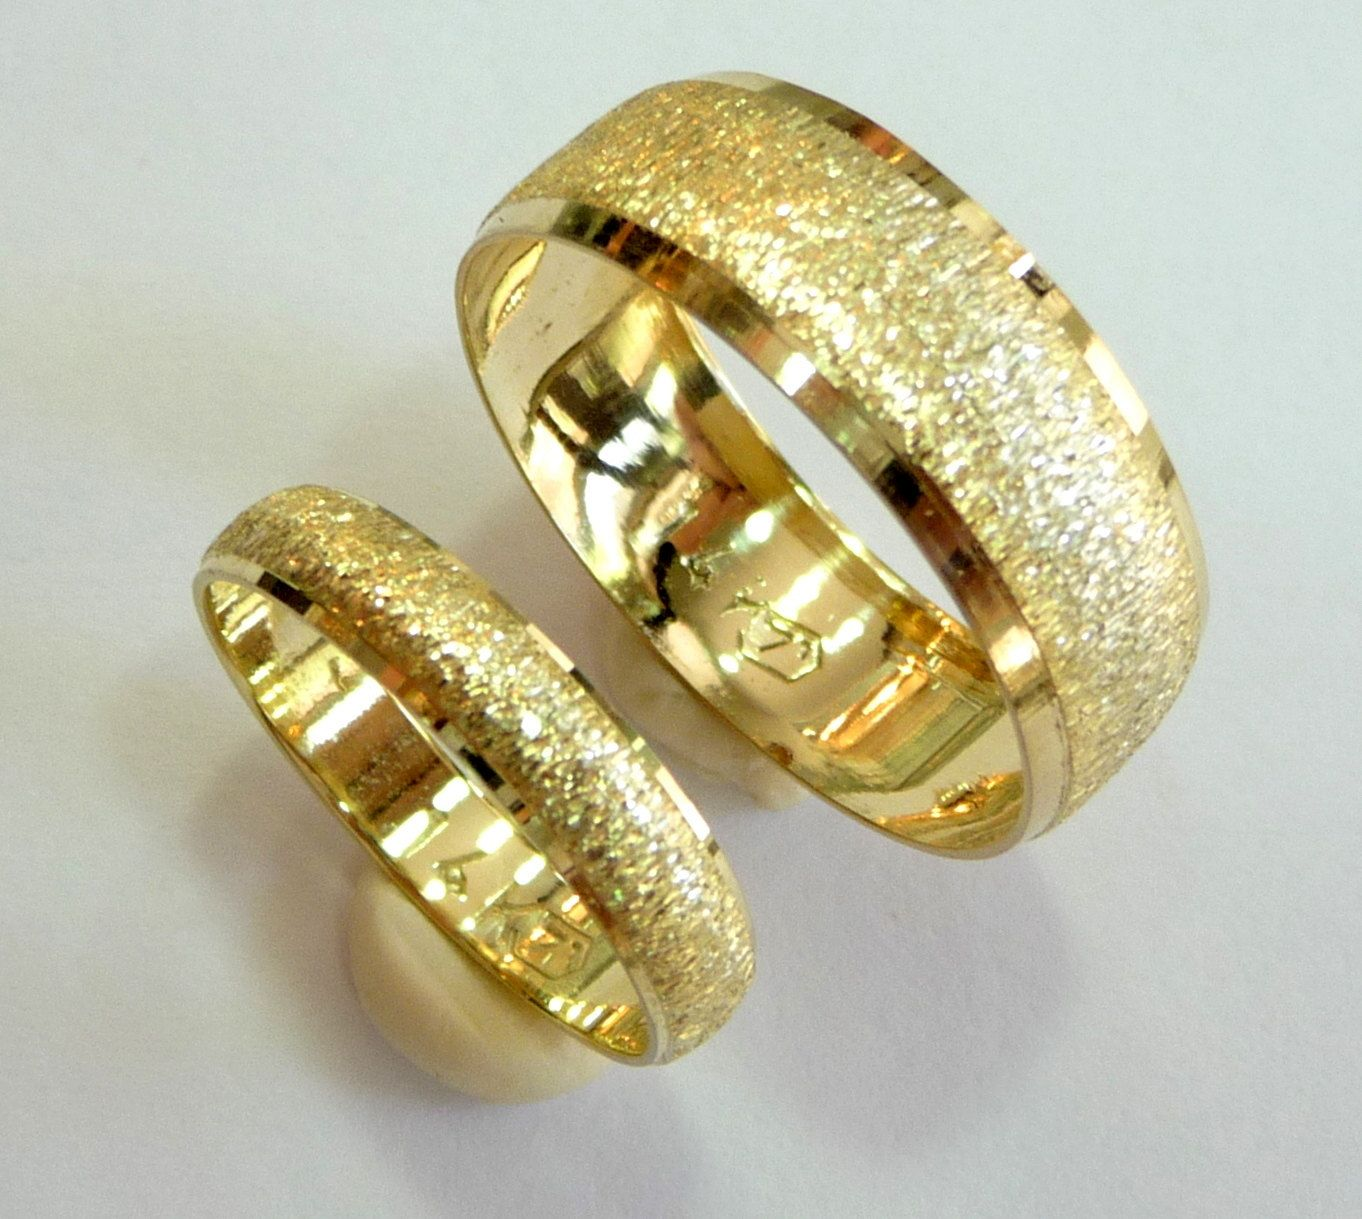 16 Wedding bands set gold wedding rings for men and women 14k gold ...